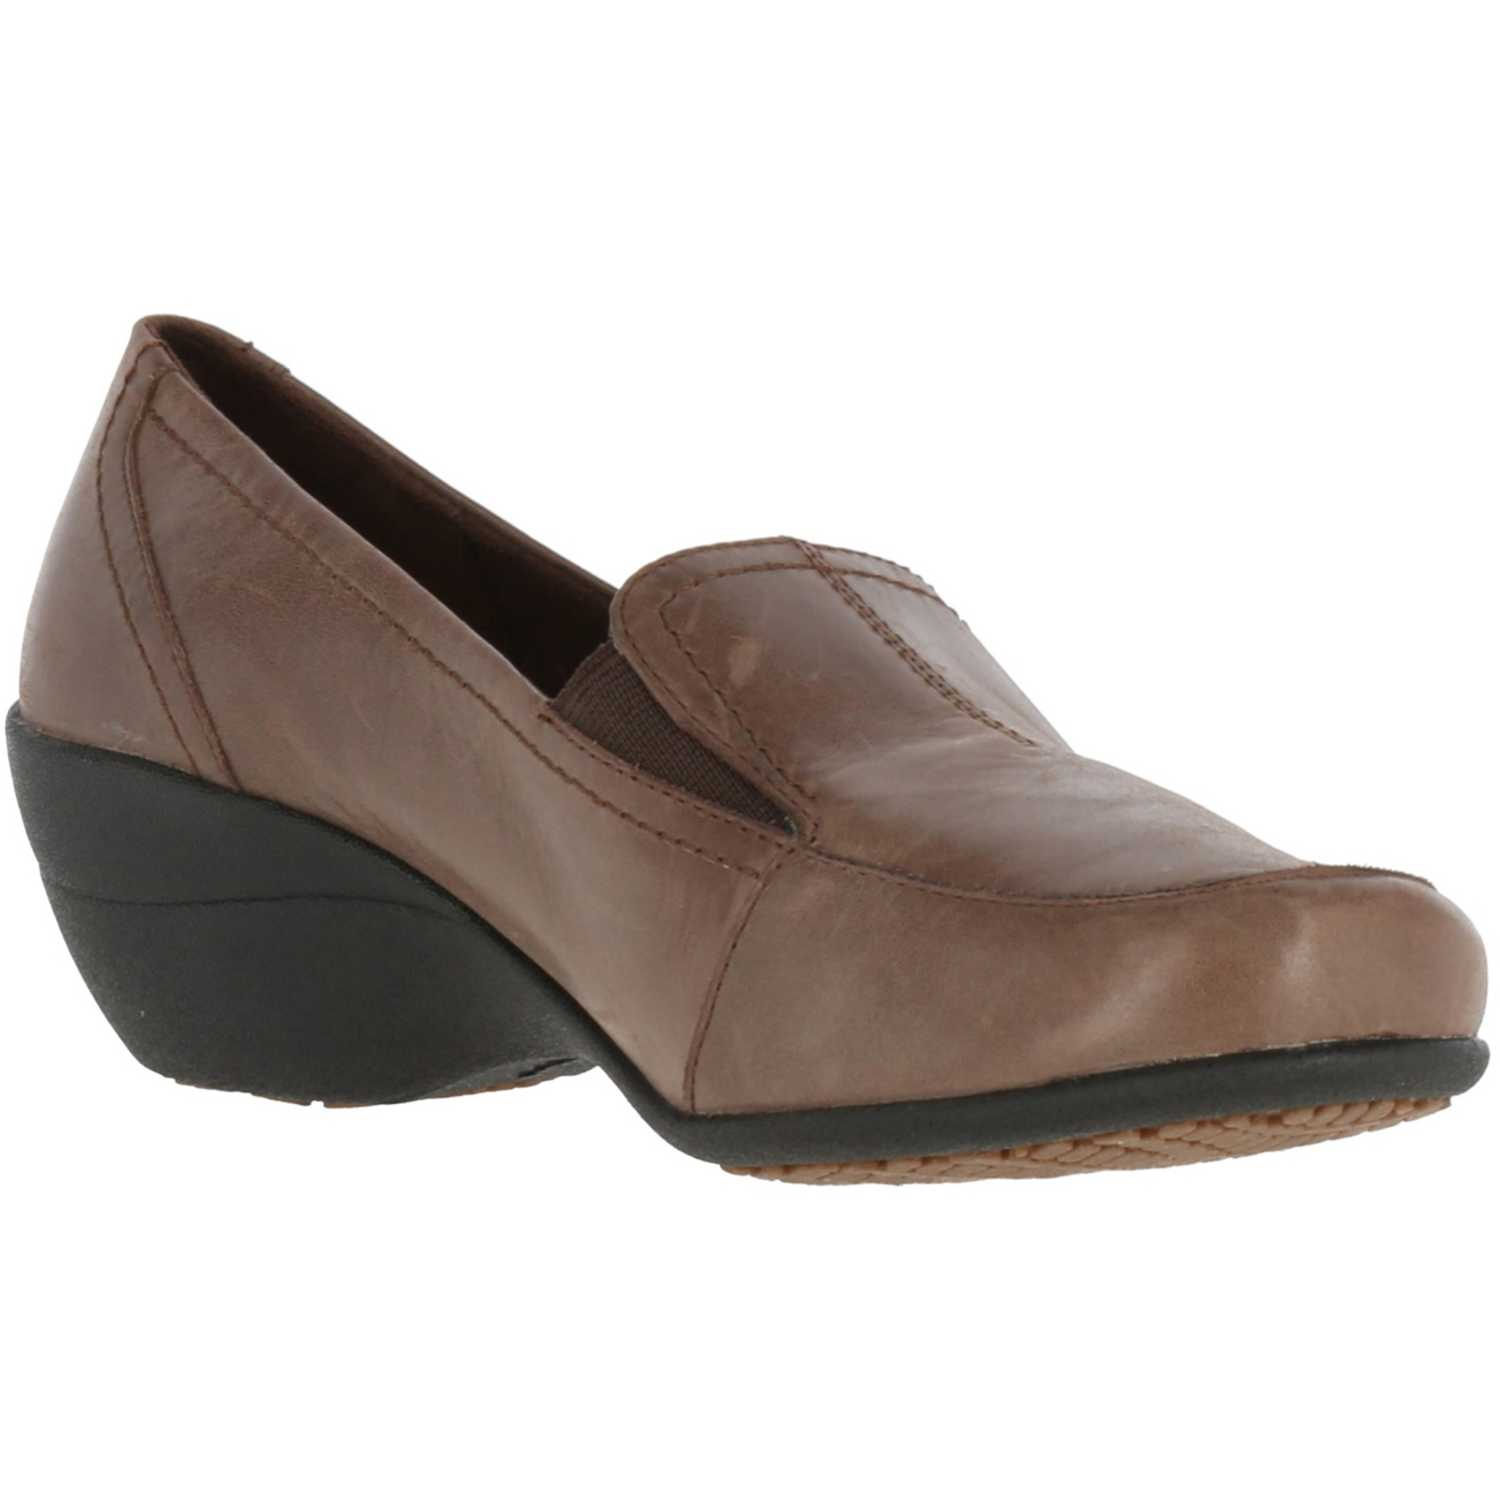 Hush Puppies kana slip on Marron Flats